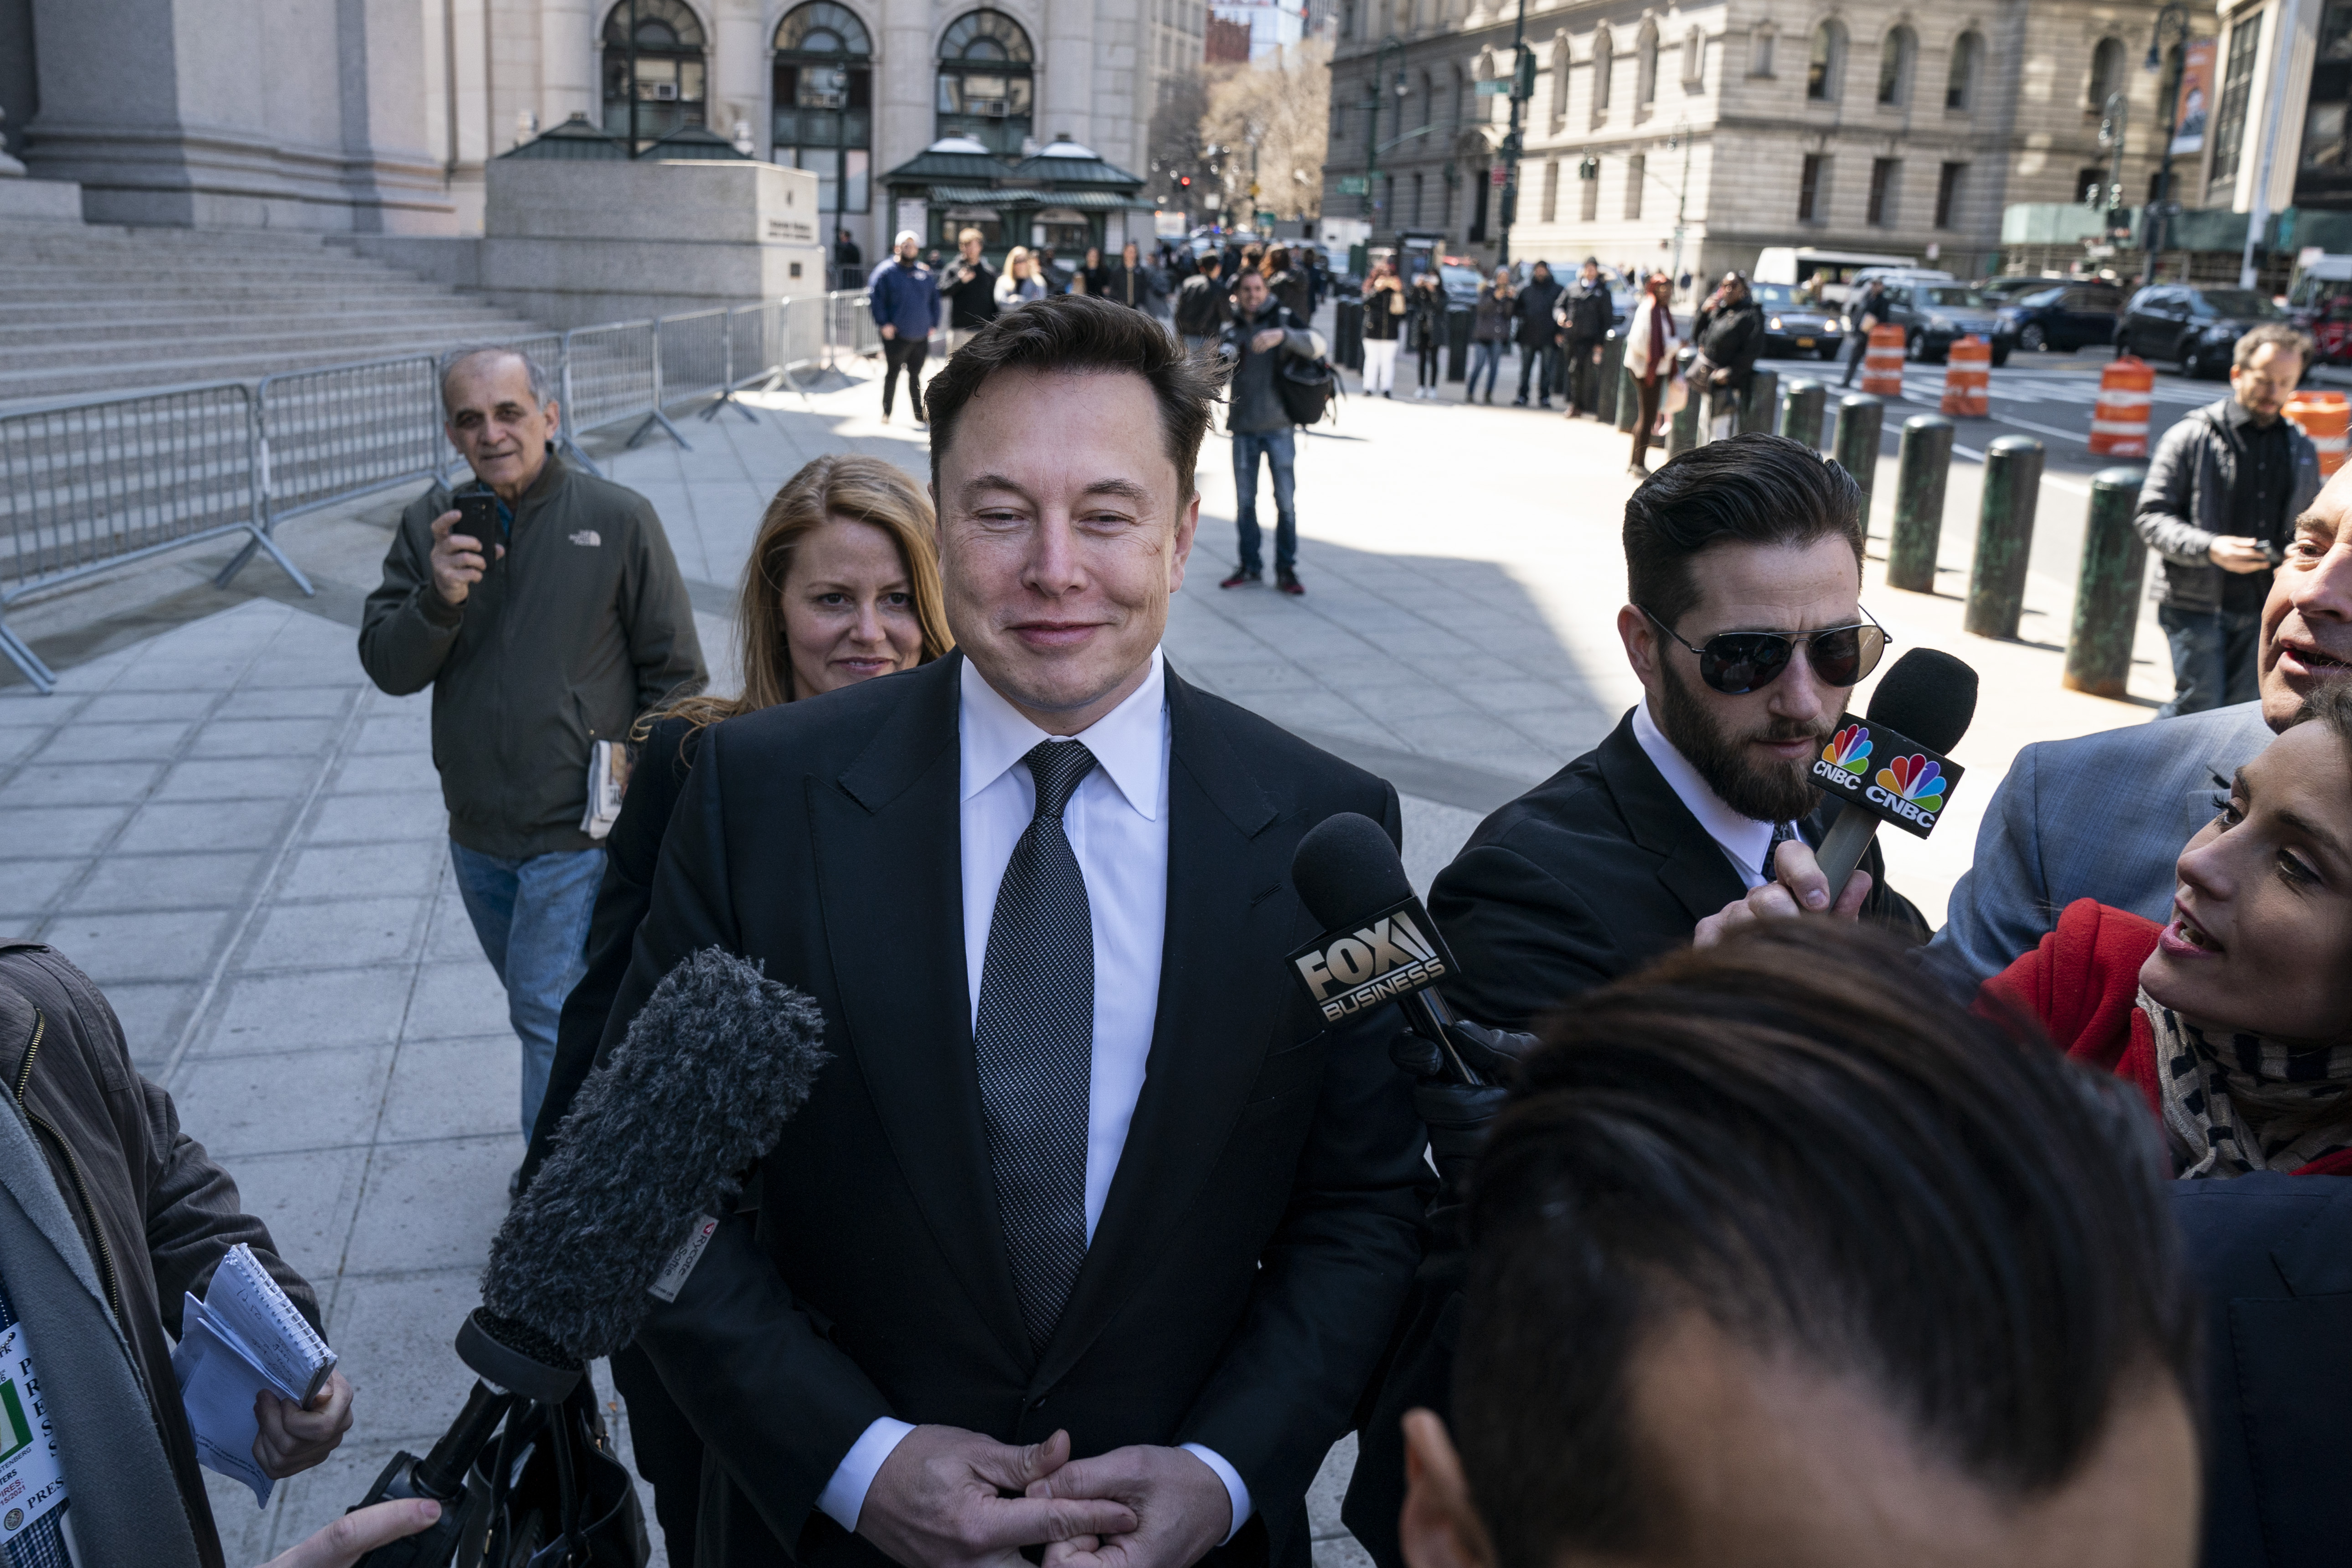 best apps for uber drivers 2020 Tesla robotaxis 2020? Be skeptical of Elon Musk's latest